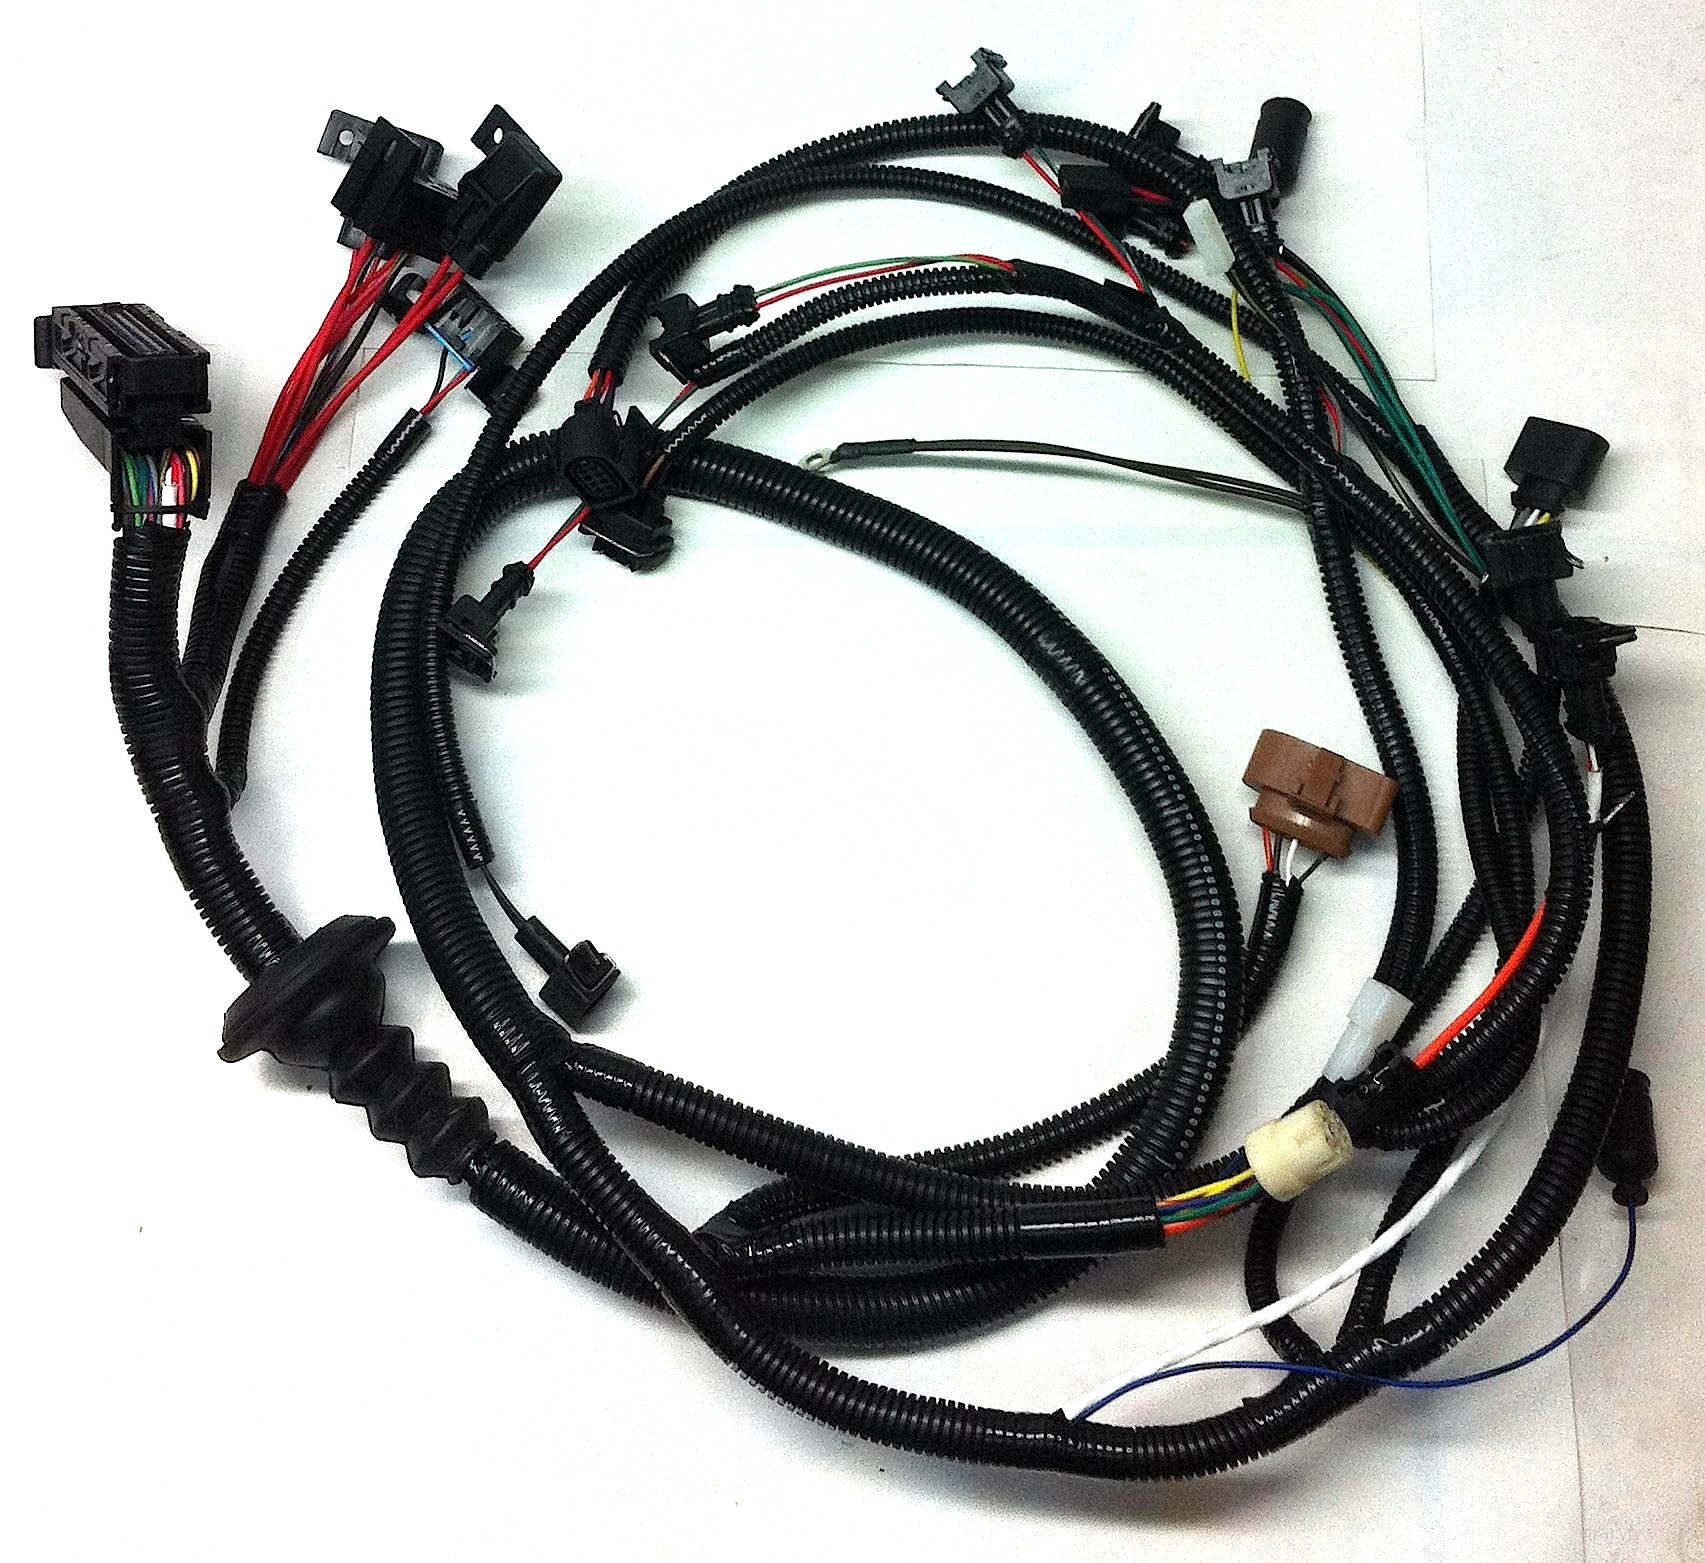 Wiring_Harness_2LR 2lr tiico conversion wiring harness foreign auto & supply, inc tdi swap wiring harness at creativeand.co